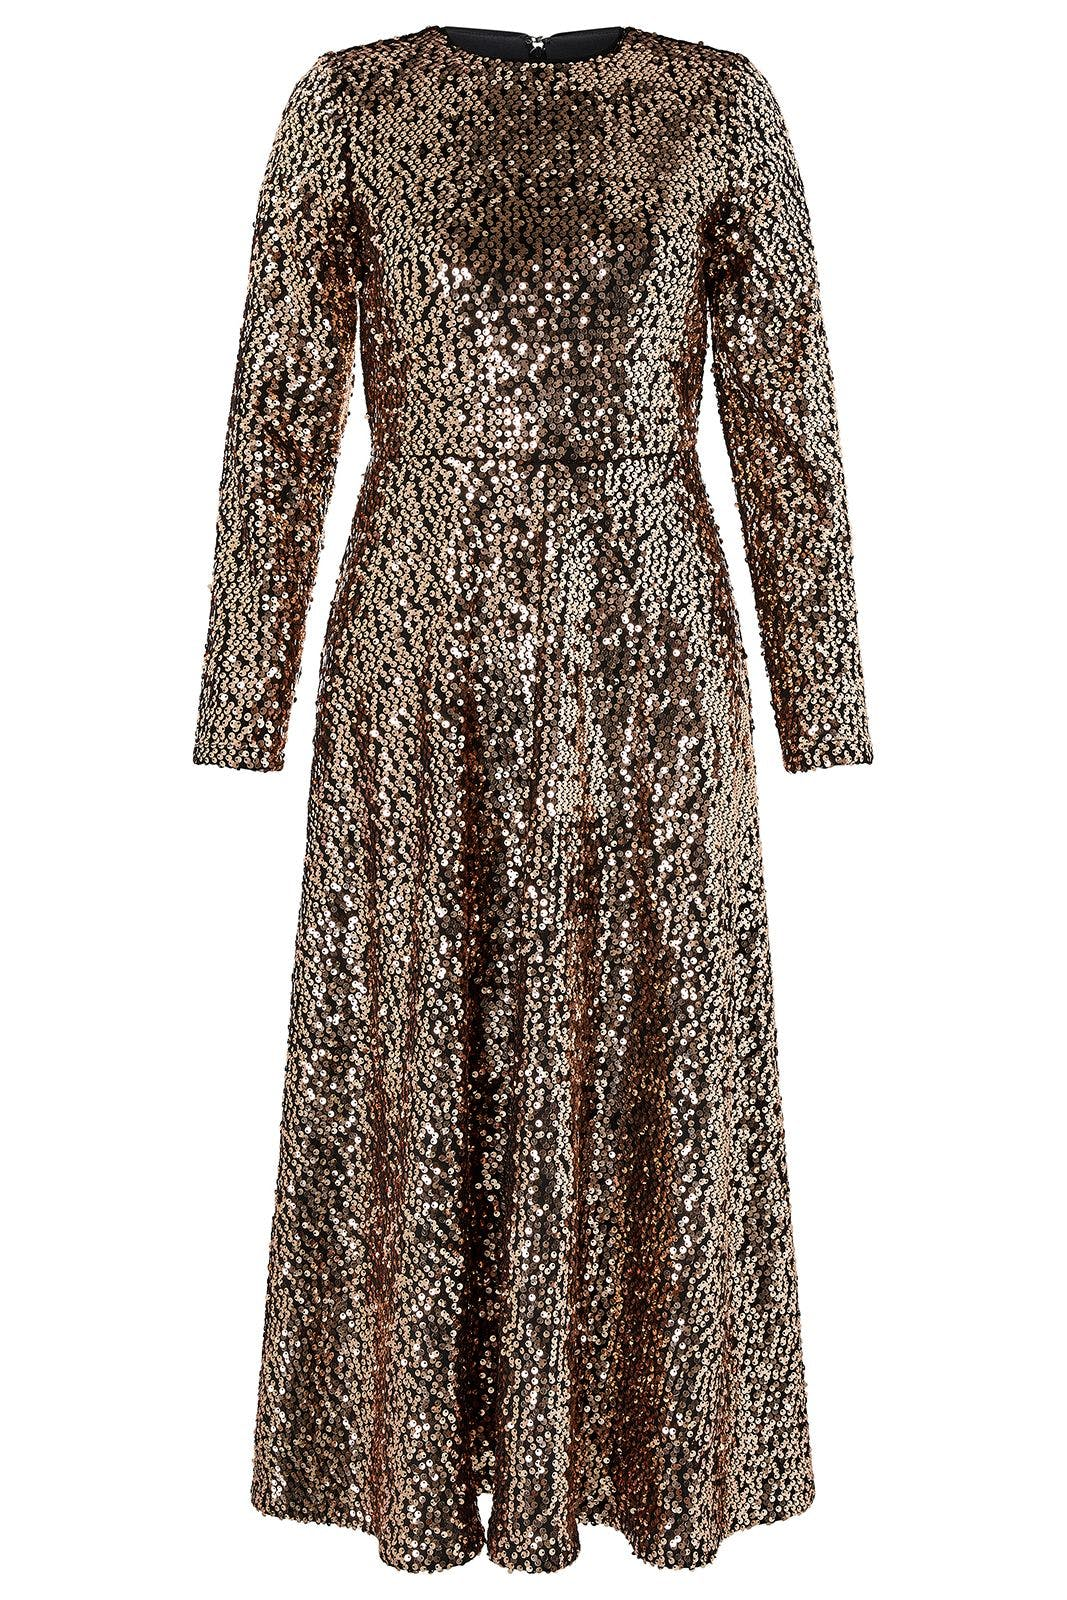 01aeec84b0 13 sequin dresses to get you in the Christmas party mood